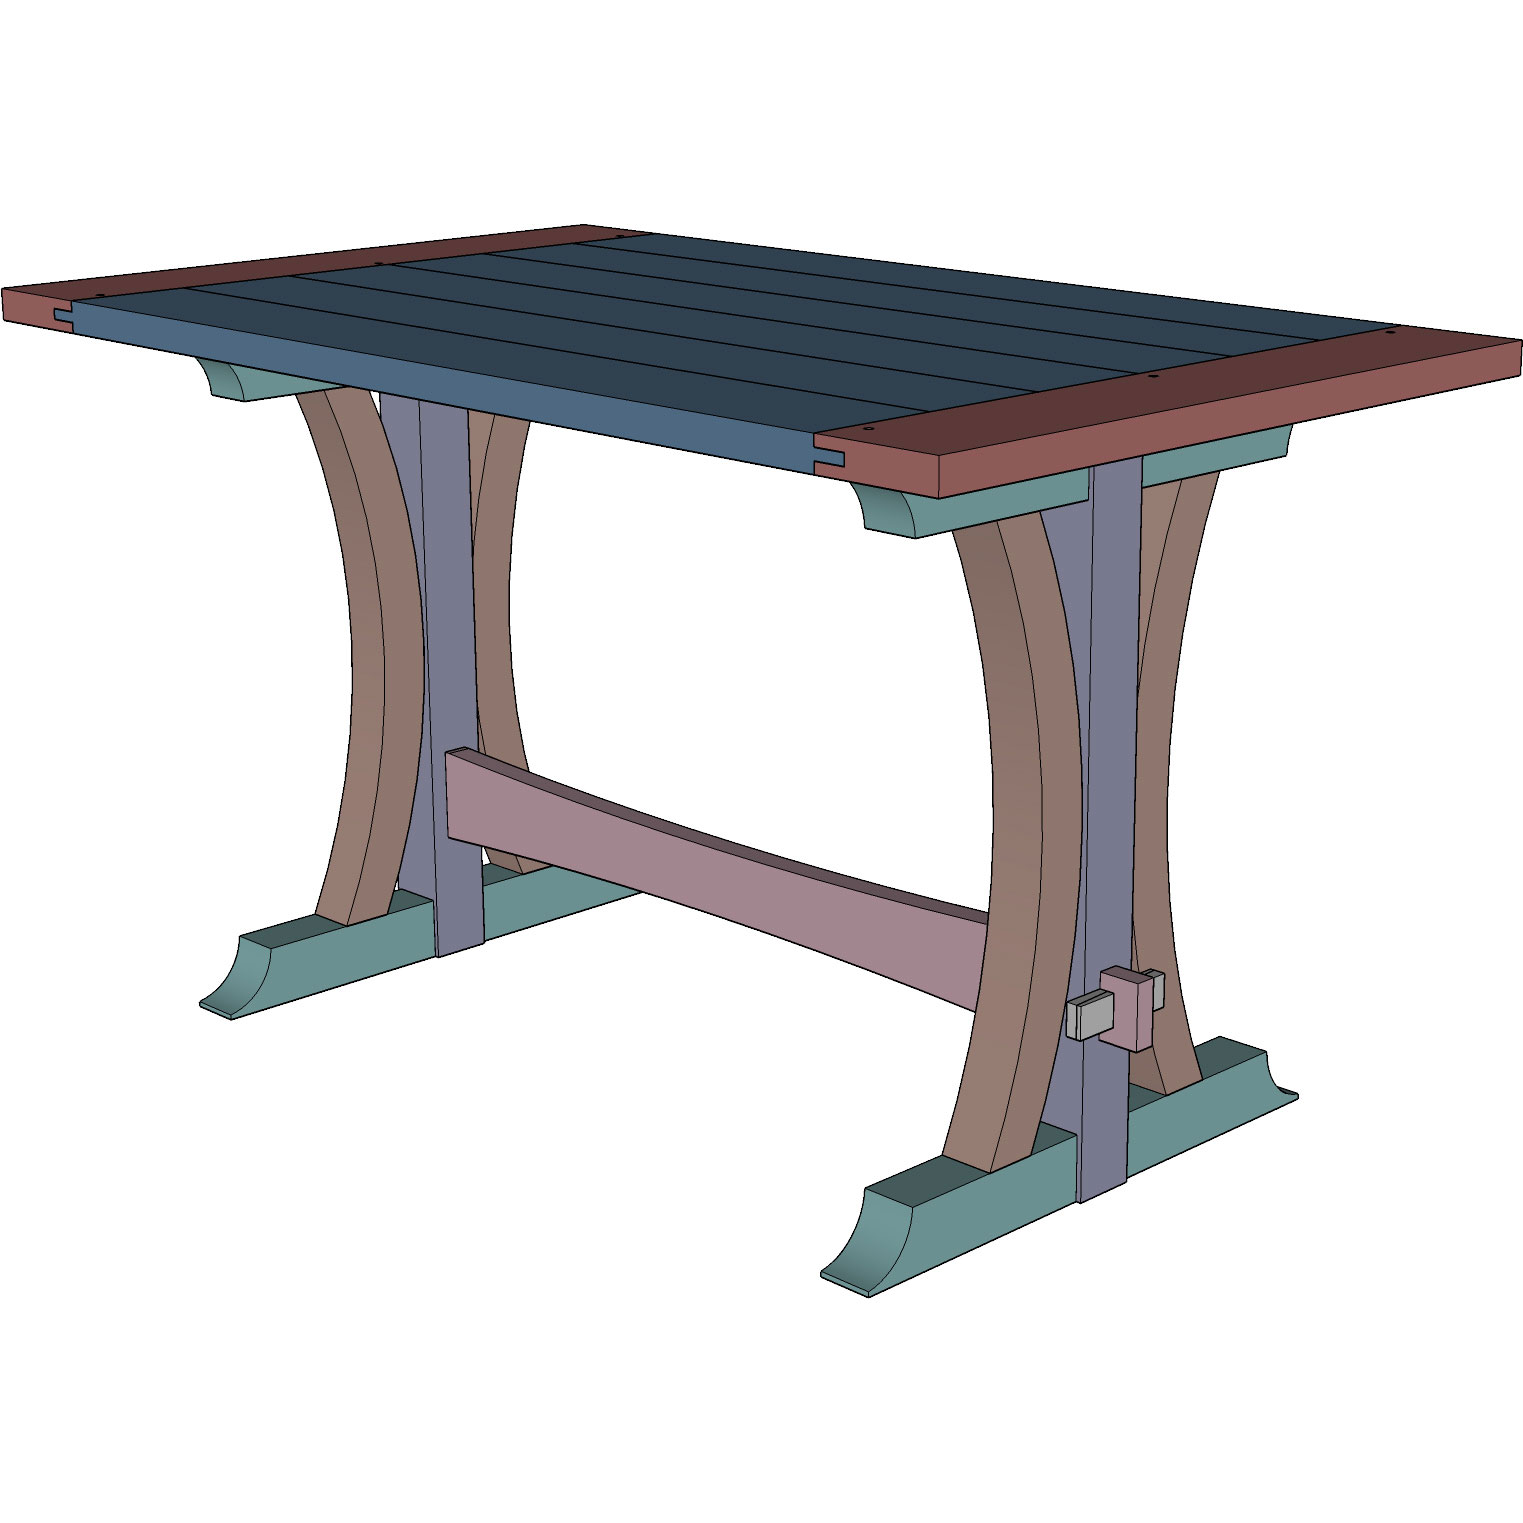 wilkerdos-dining-table-plan-image-overview